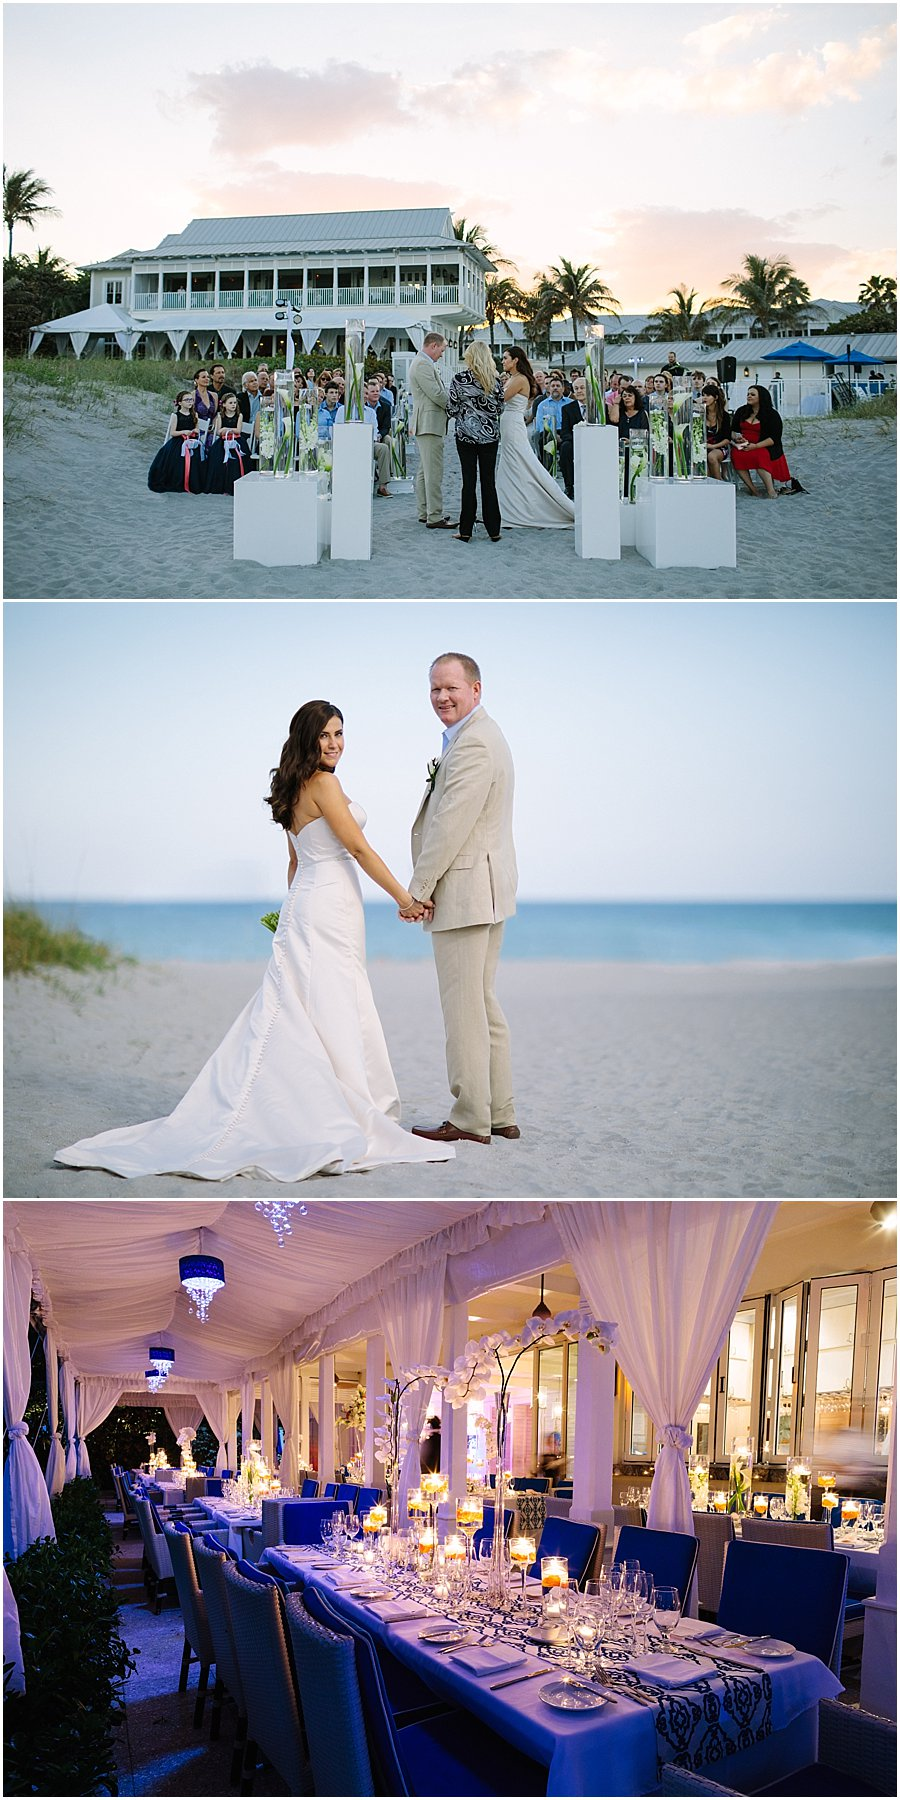 Delray Beach Wedding Venues_Seagate Hotel and Beach Club_The Harmons Photography